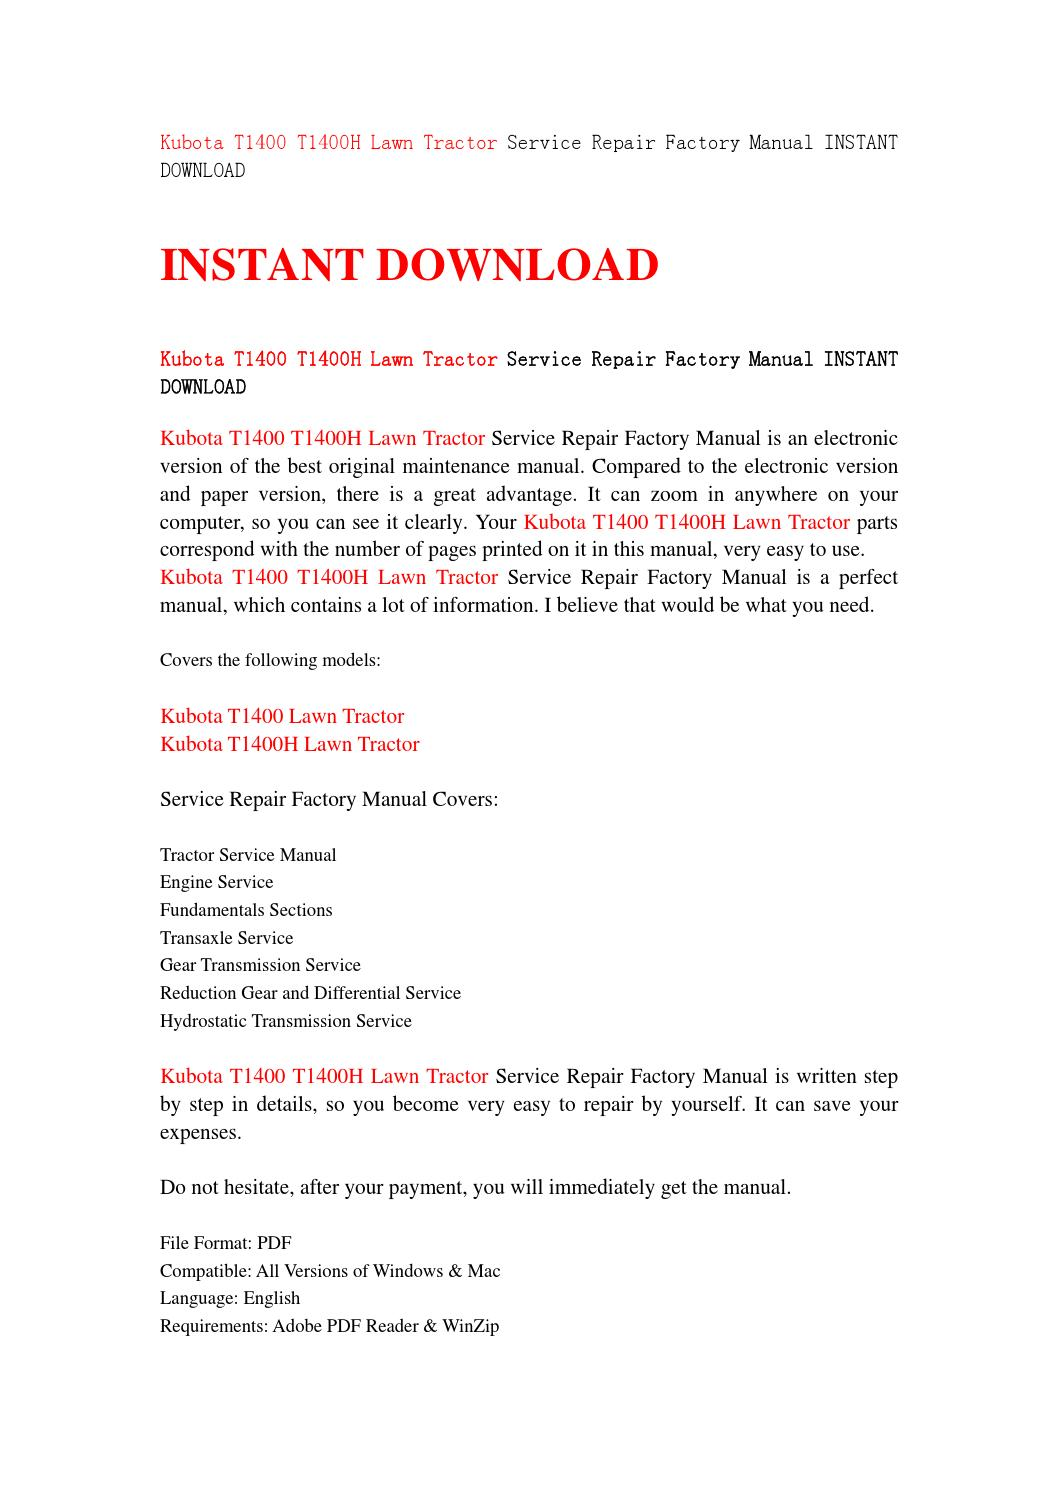 Kubota t1400 t1400h lawn tractor service repair factory manual instant  download by kjsnehfmsne - issuu